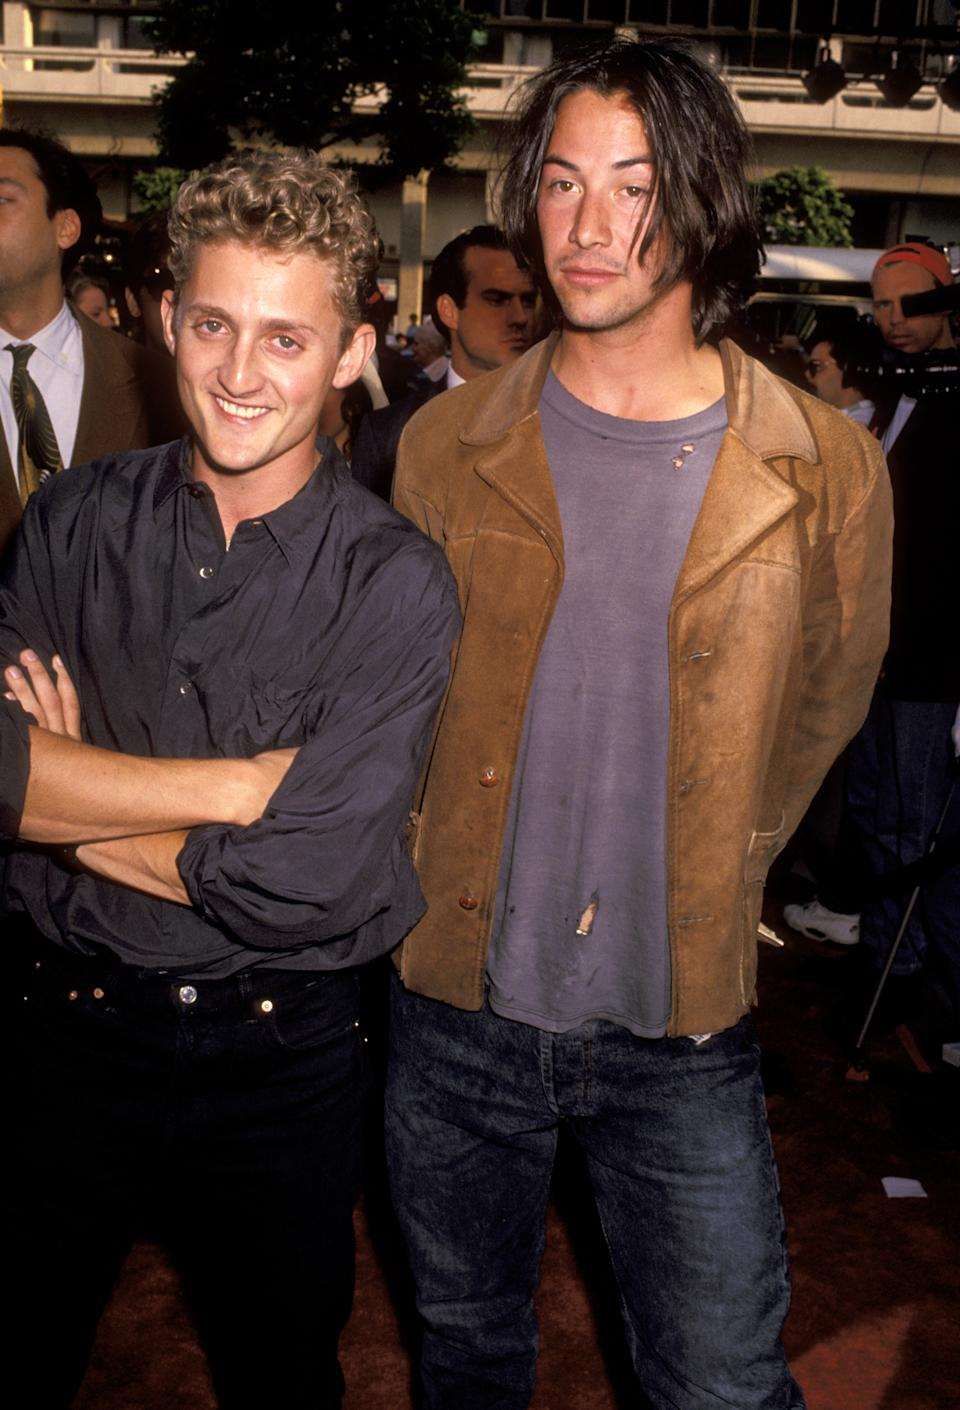 Alex Winter and Keanu Reeves (Photo by Ron Galella/Ron Galella Collection via Getty Images)